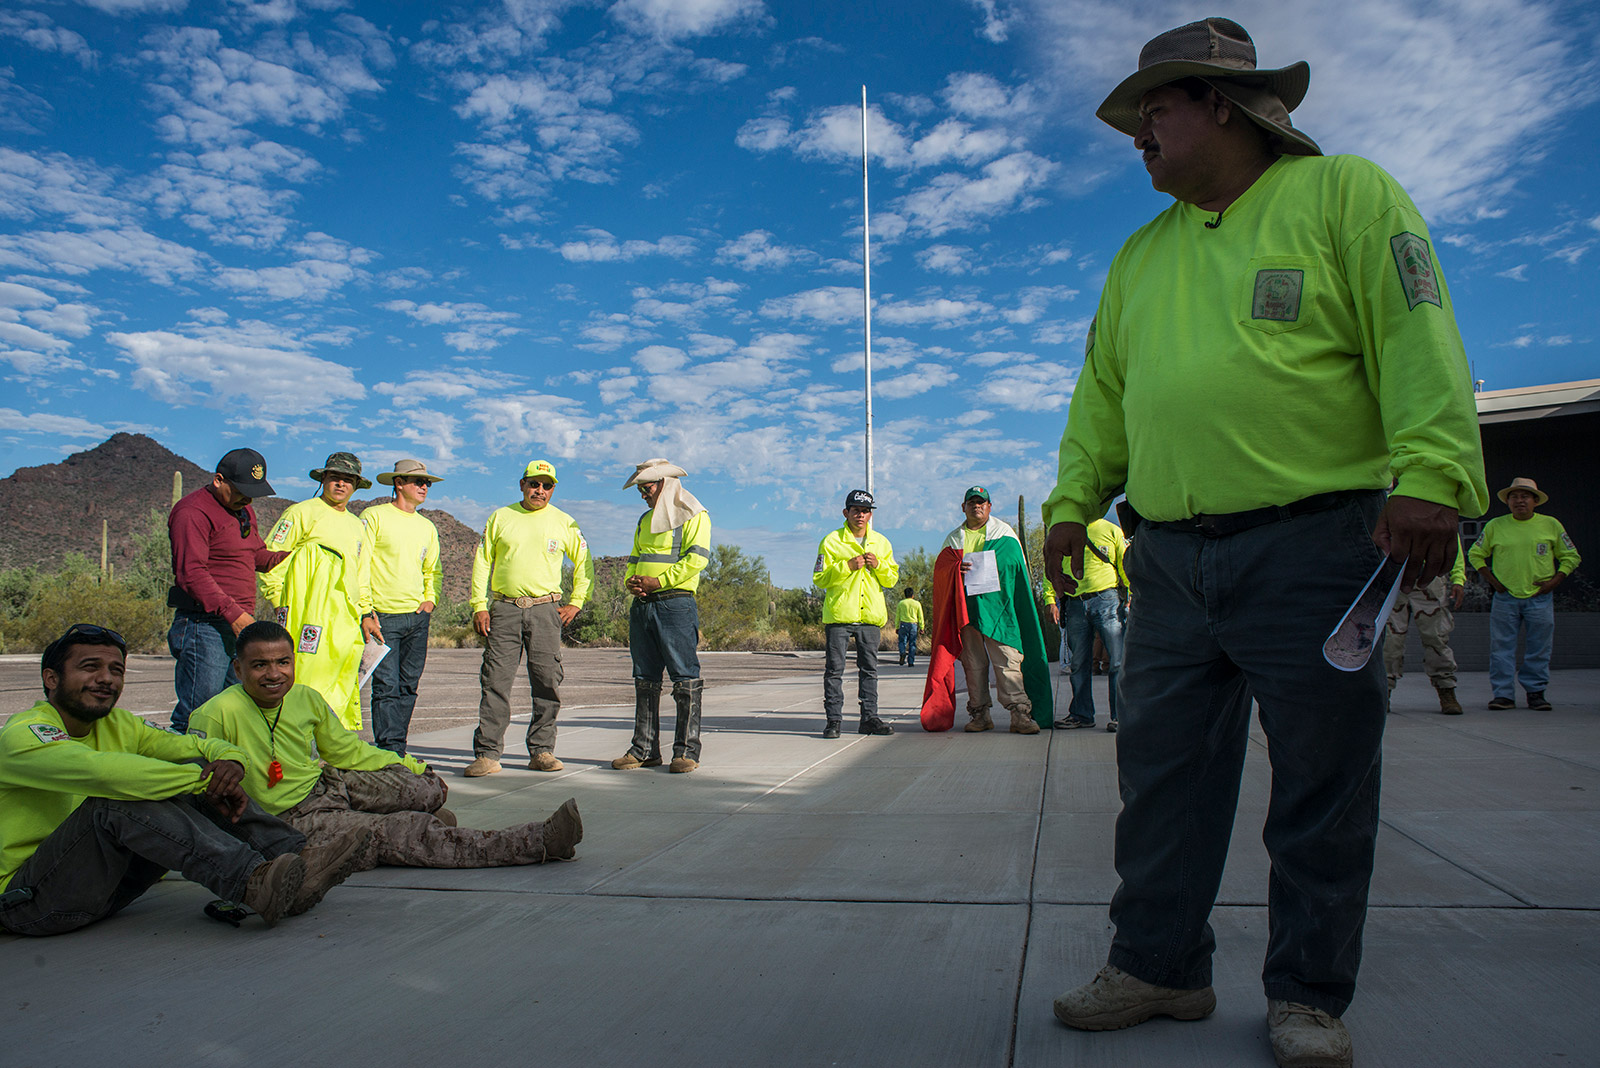 Ely Ortiz, founder and group leader of Aguilas Del Desierto, briefs his group of nearly two dozen volunteers at the visitors center of Organ Pipe Cactus National Monument in Arizona on Aug. 26, 2017. Members of the group wear neon yellow shirts so they are easily visible to one another as they search for lost migrants in the desert. <em>(Brandon Quester/inewsource)</em>